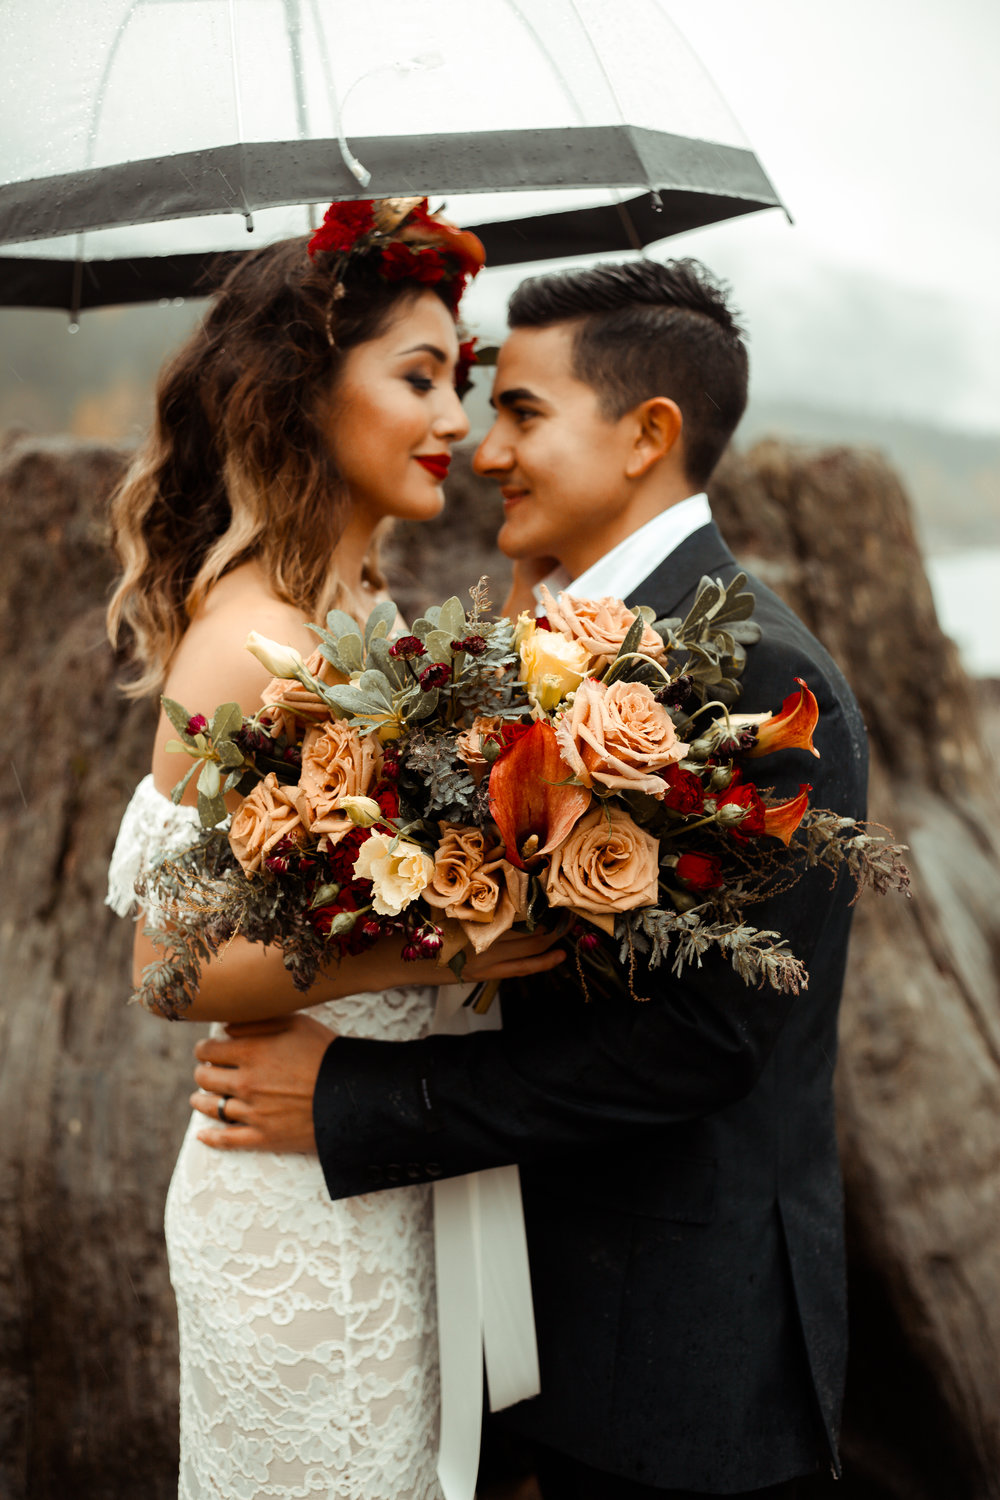 A Whimsical Millennial Elopement in Washington. -